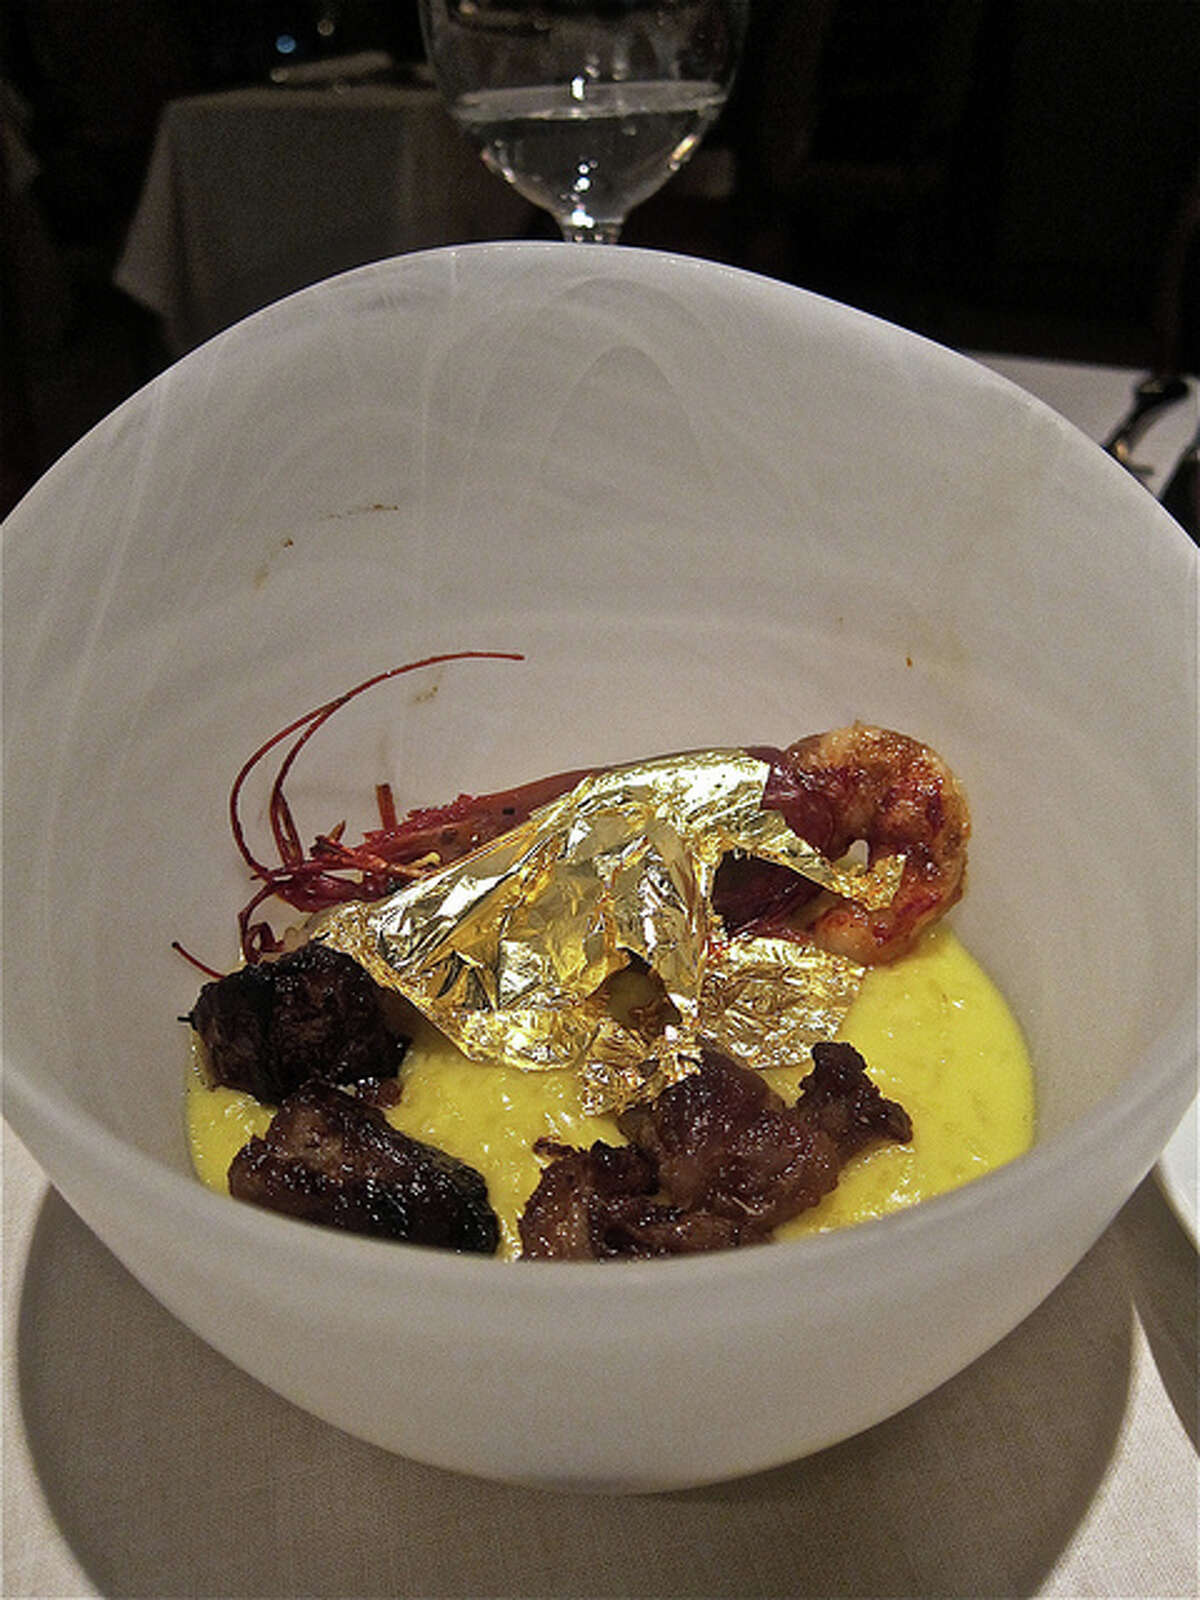 Risotto with bone marrow and whole prawn blanketed with edible gold leaf, at Ristorante Cavour